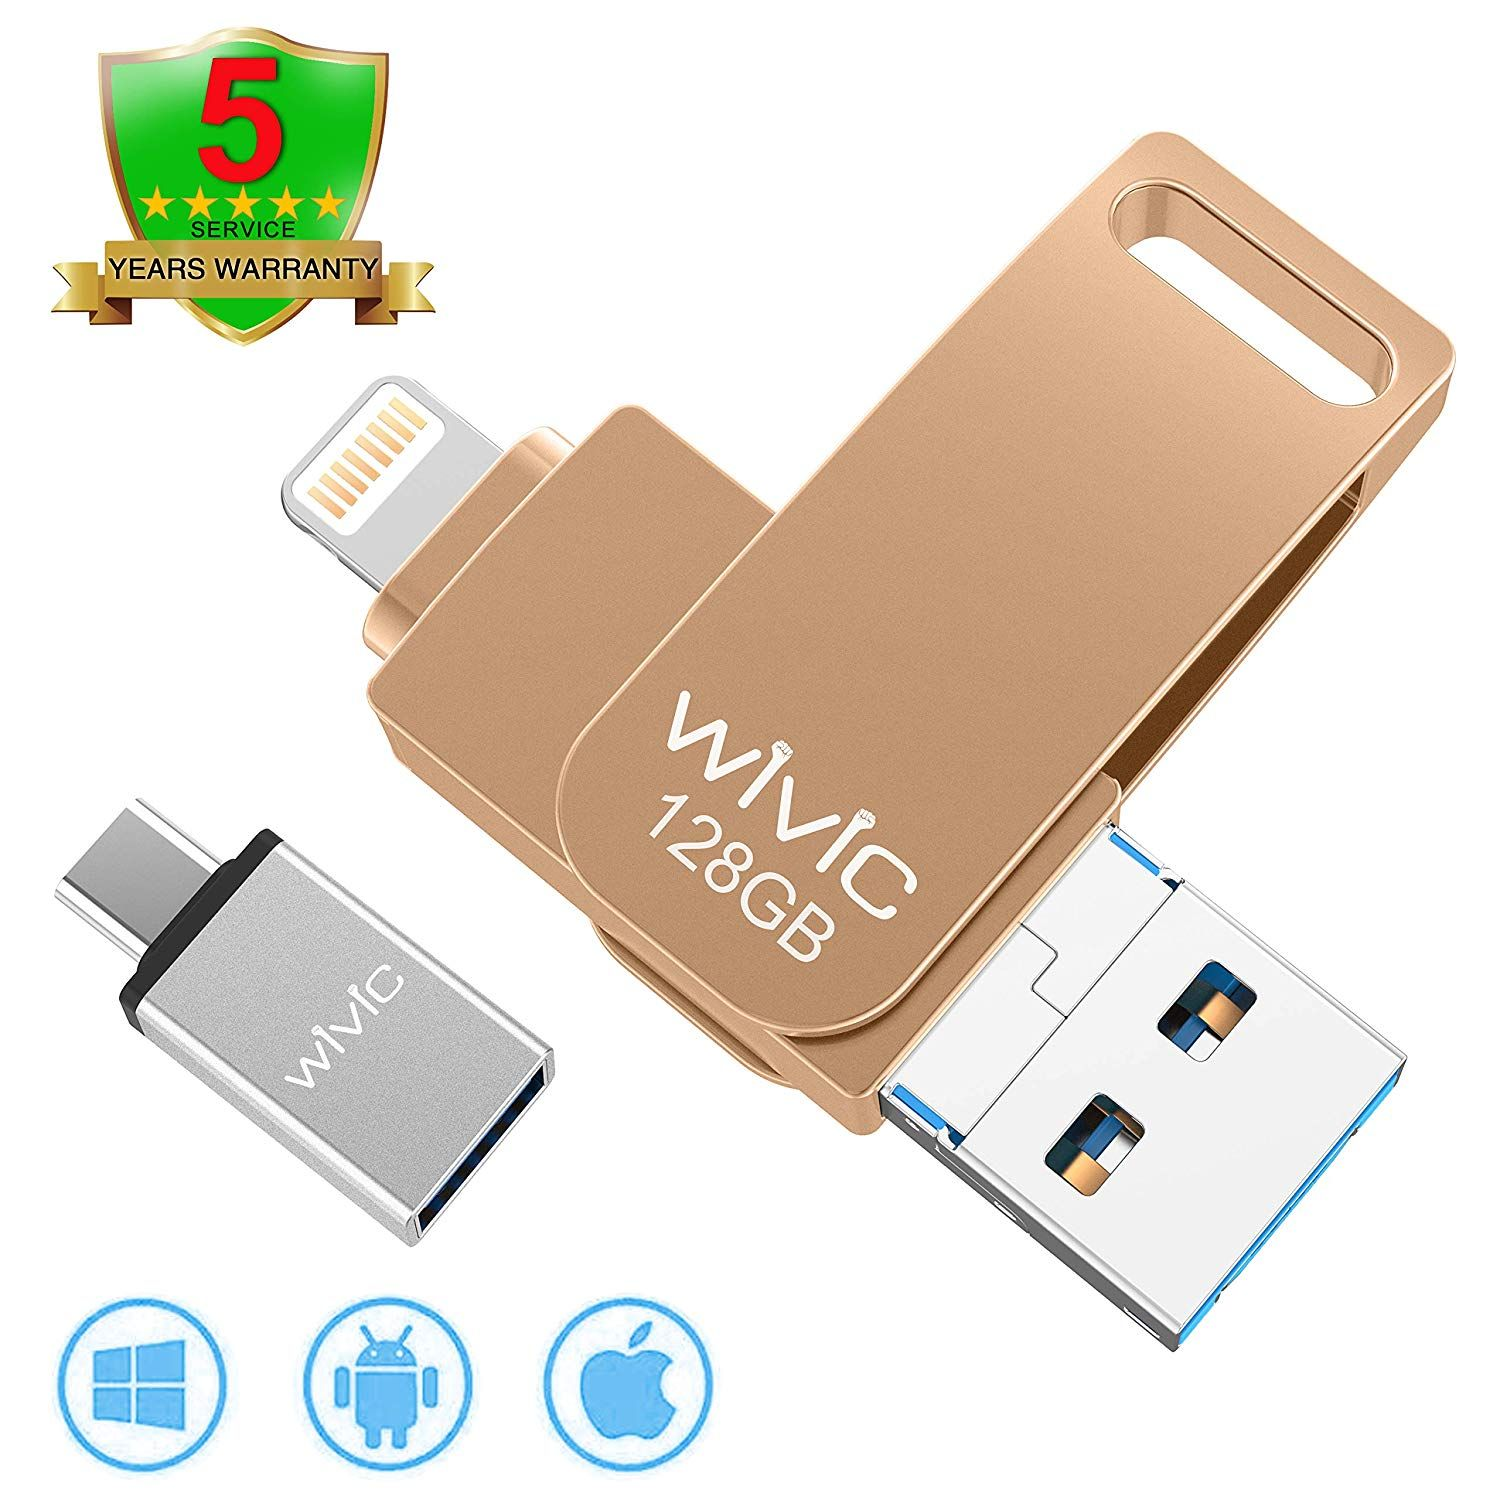 Phone Feature 4 In 1 Multiport For More Device Photo Stick For Iphone Flash Drive With 4 Ports Ios Micro Usb Type C 3 0 Usb 3 0 Photostick Ios Flash Dr